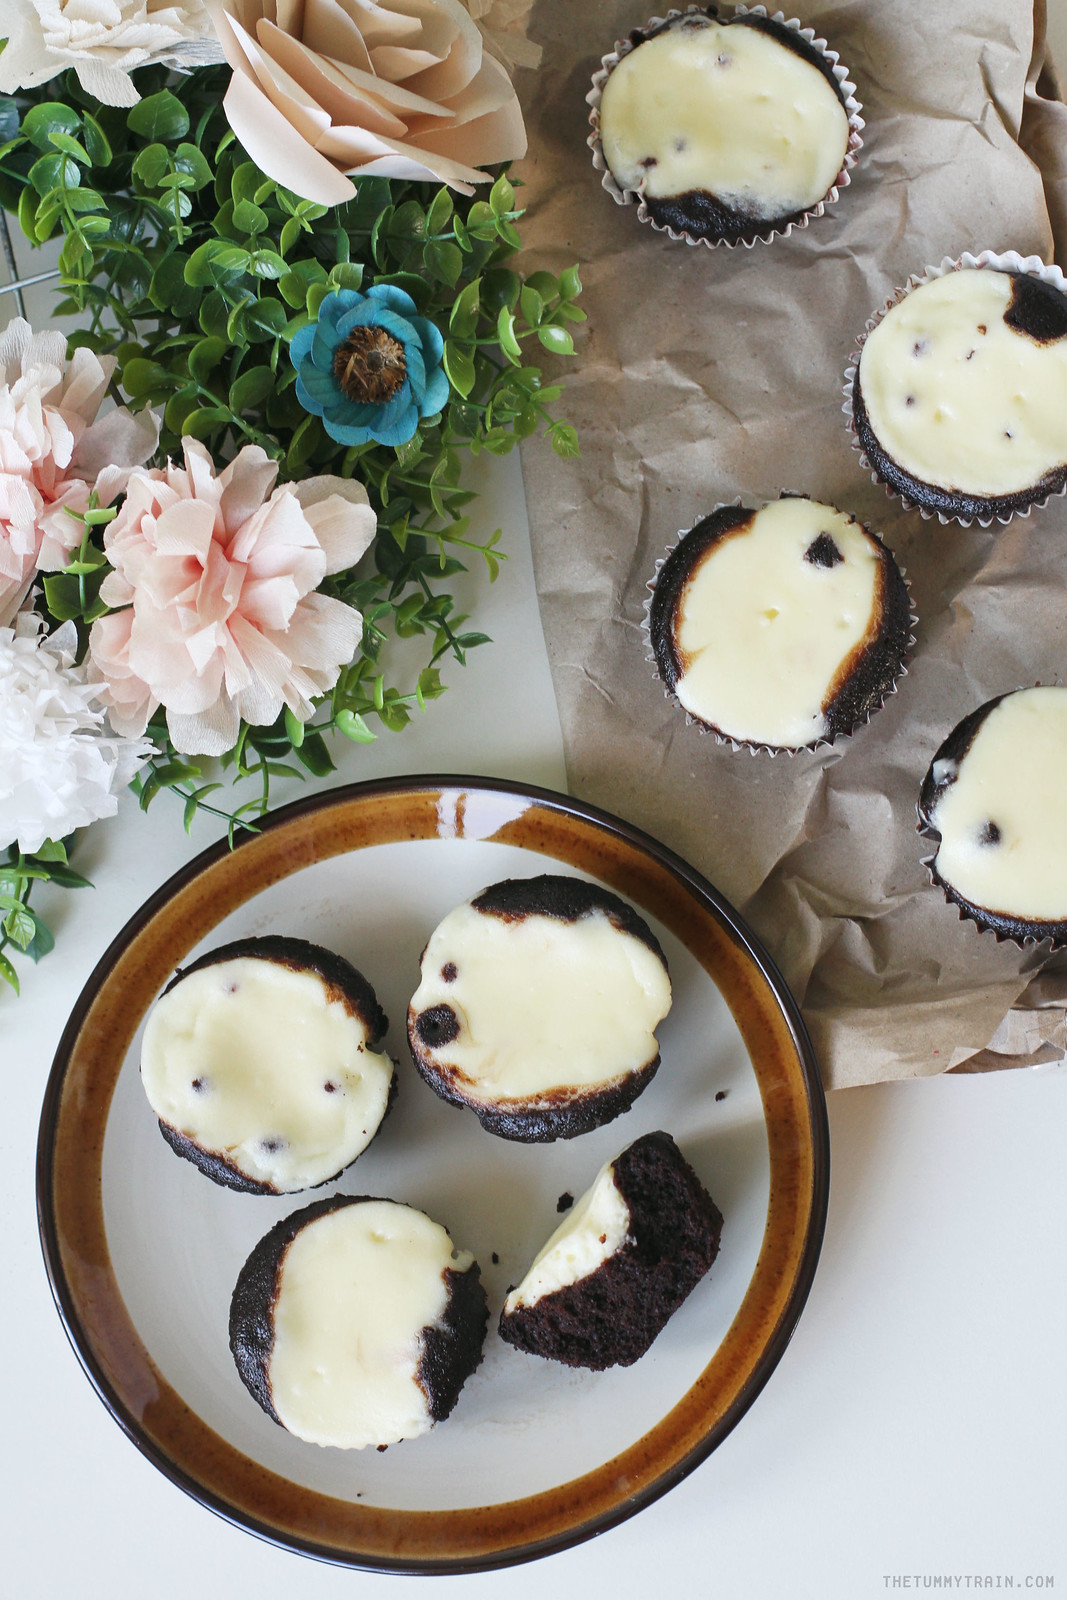 24377462421 7620466d6f h - This Black Bottom Cupcakes Recipe is pretty close to my heart